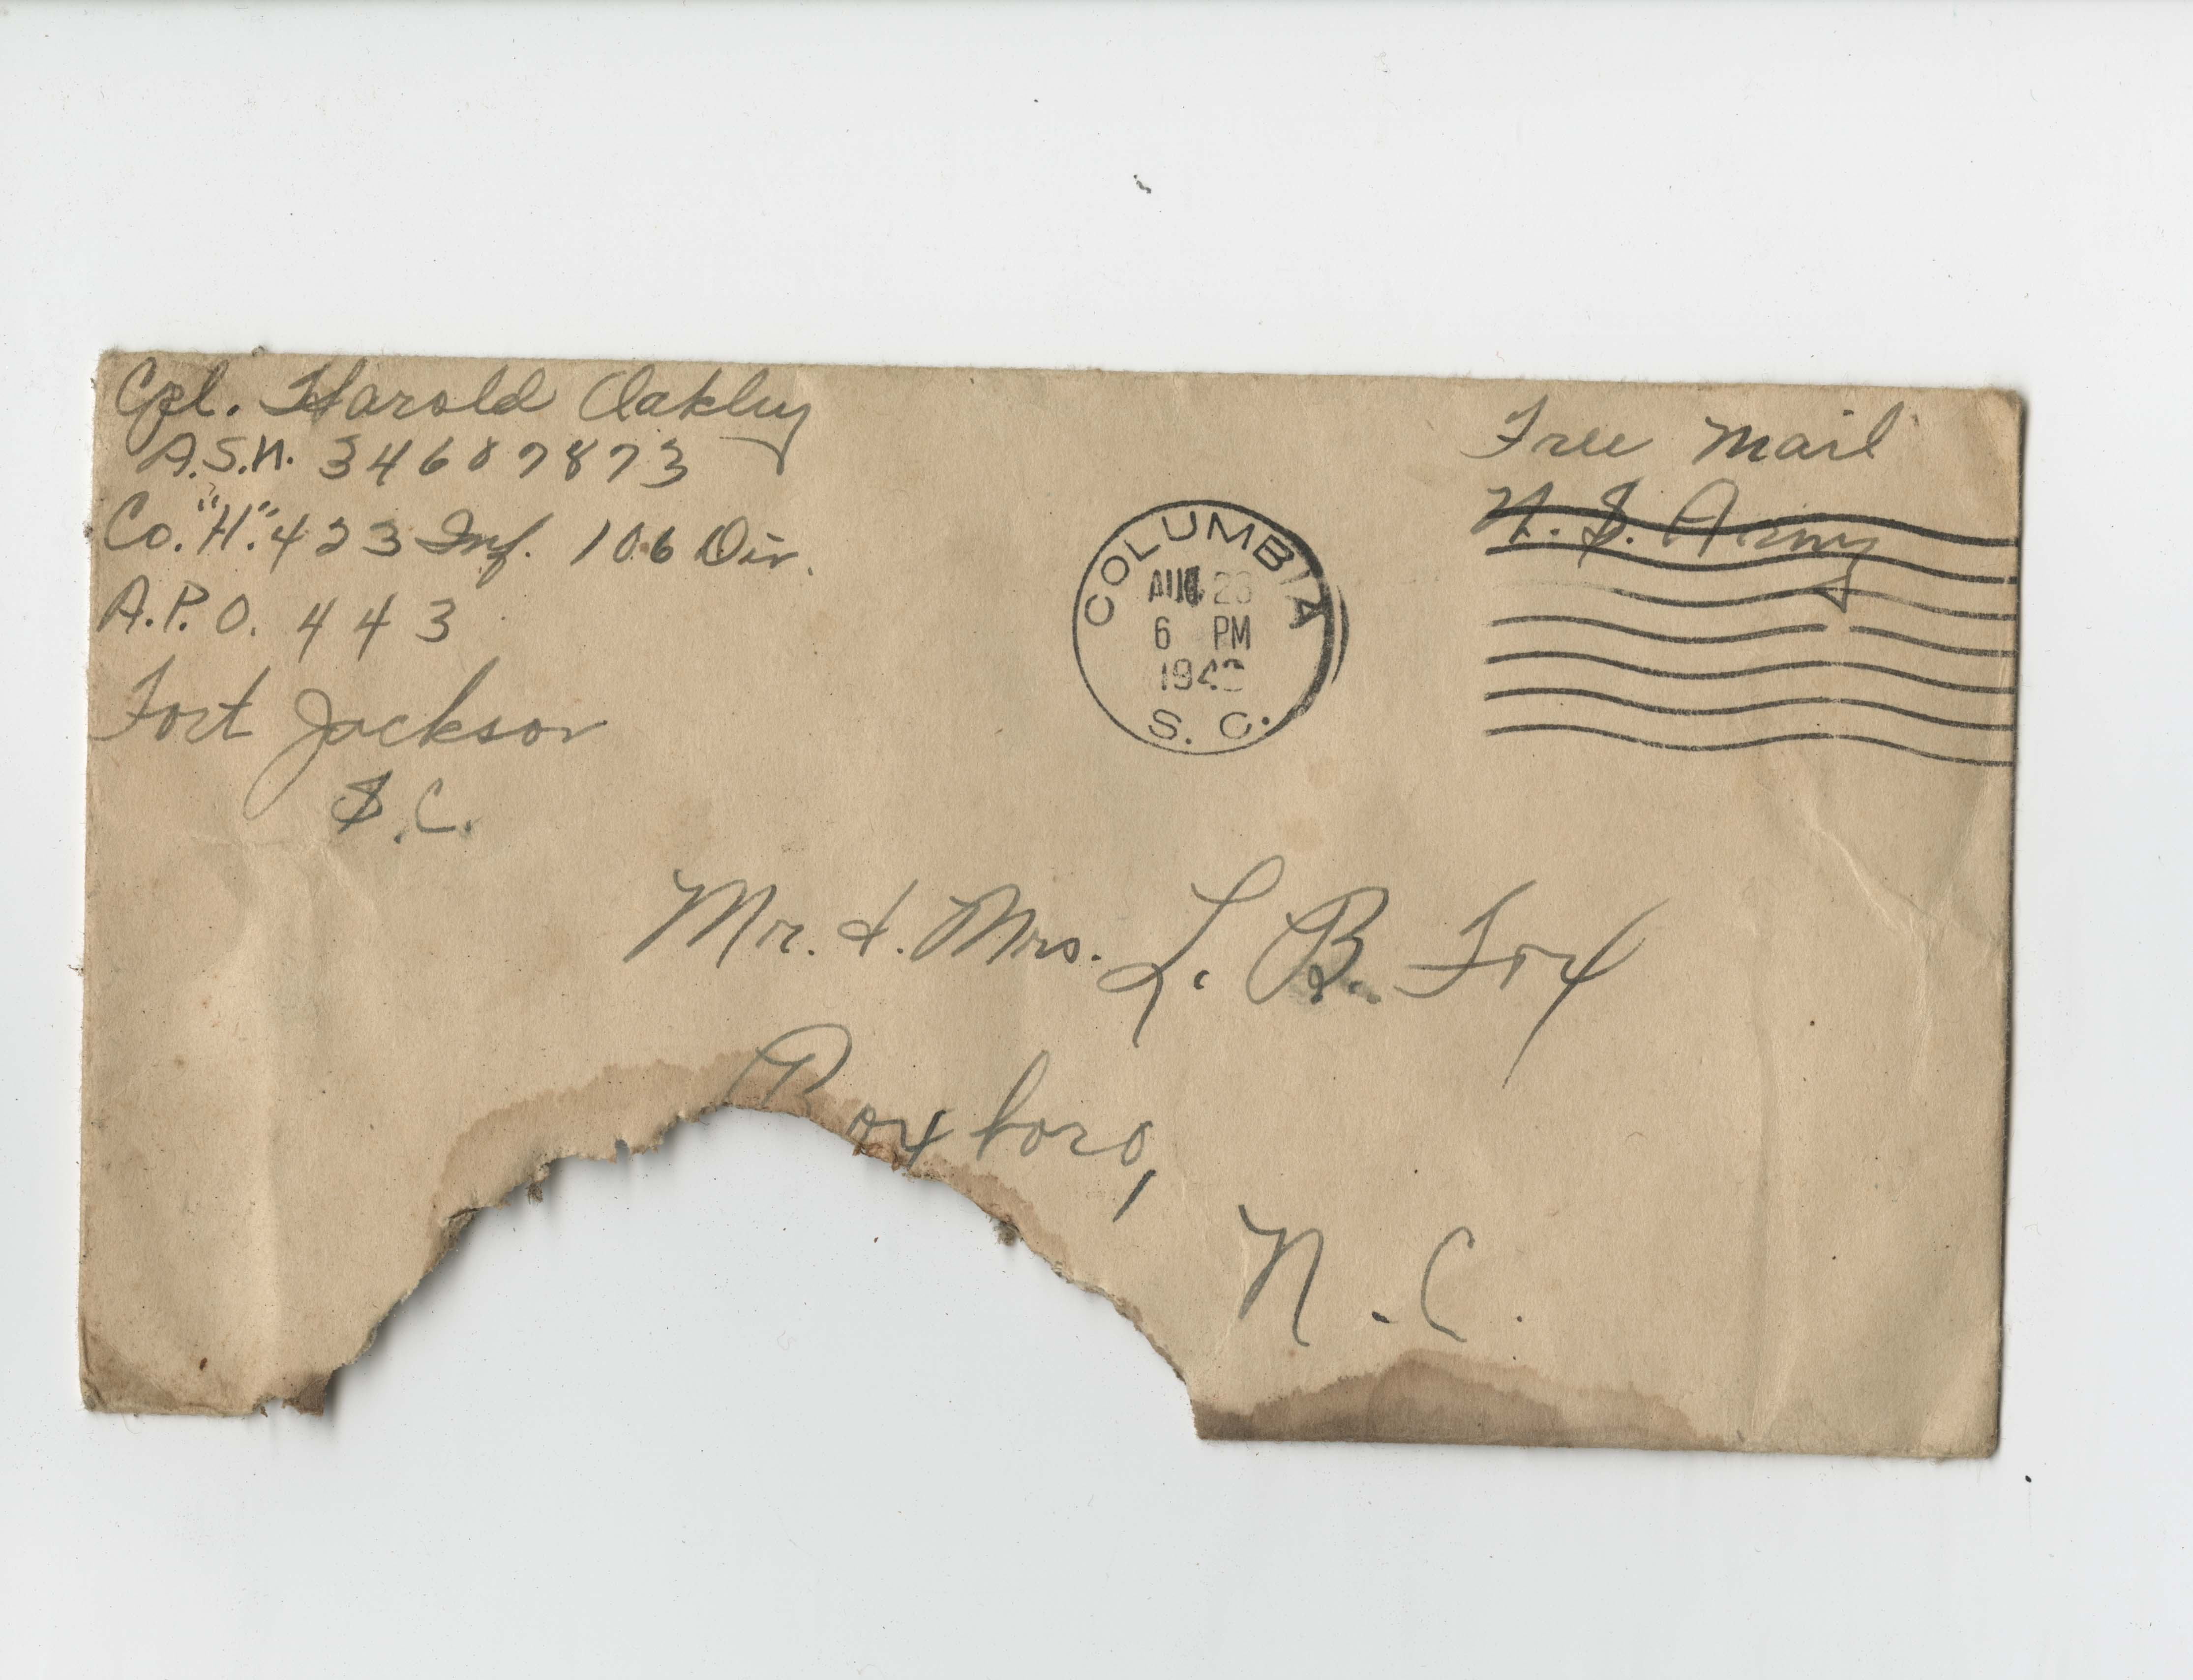 Ms2017-004_TurnerFamilyPapers_Envelope_1943_0823a